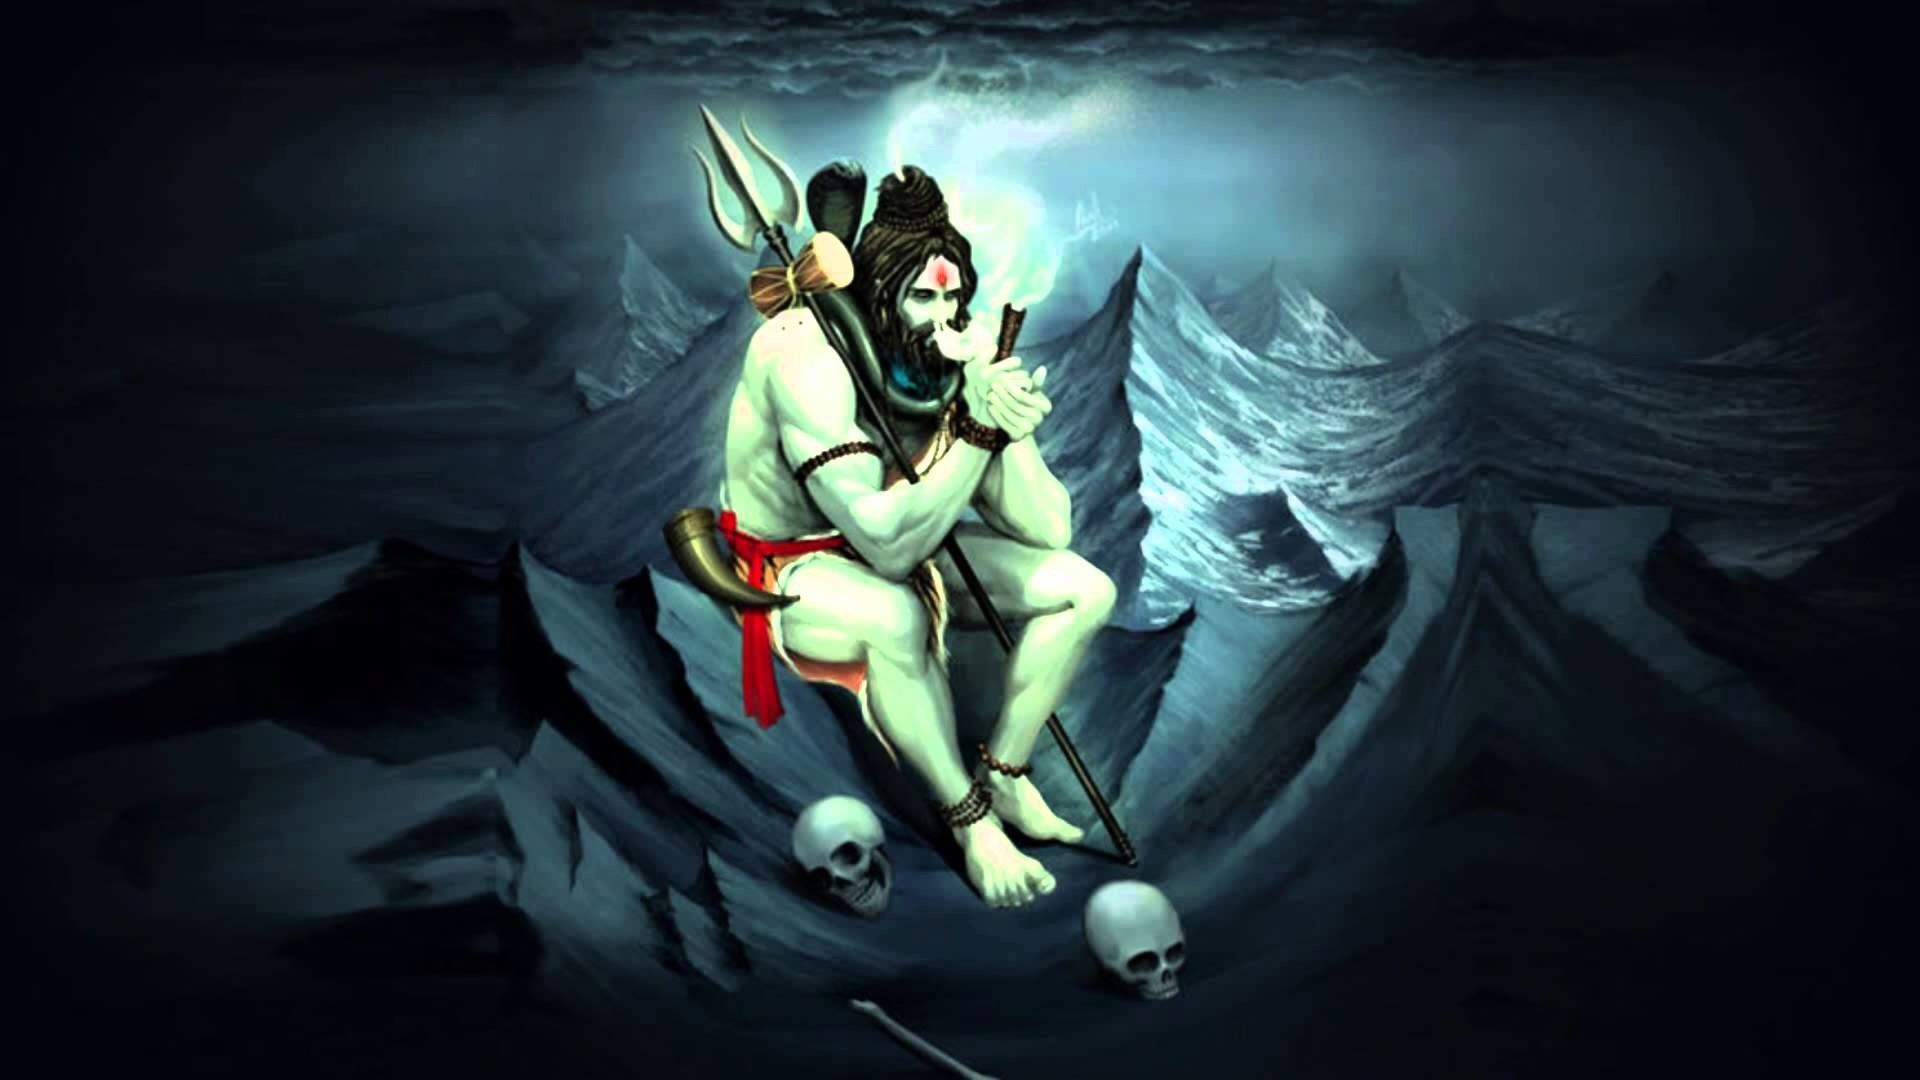 Image Result For Download Mahadev Wallpaper For Laptop Lord Shiva Lord Shiva Hd Wallpaper Hd Wallpapers 1080p